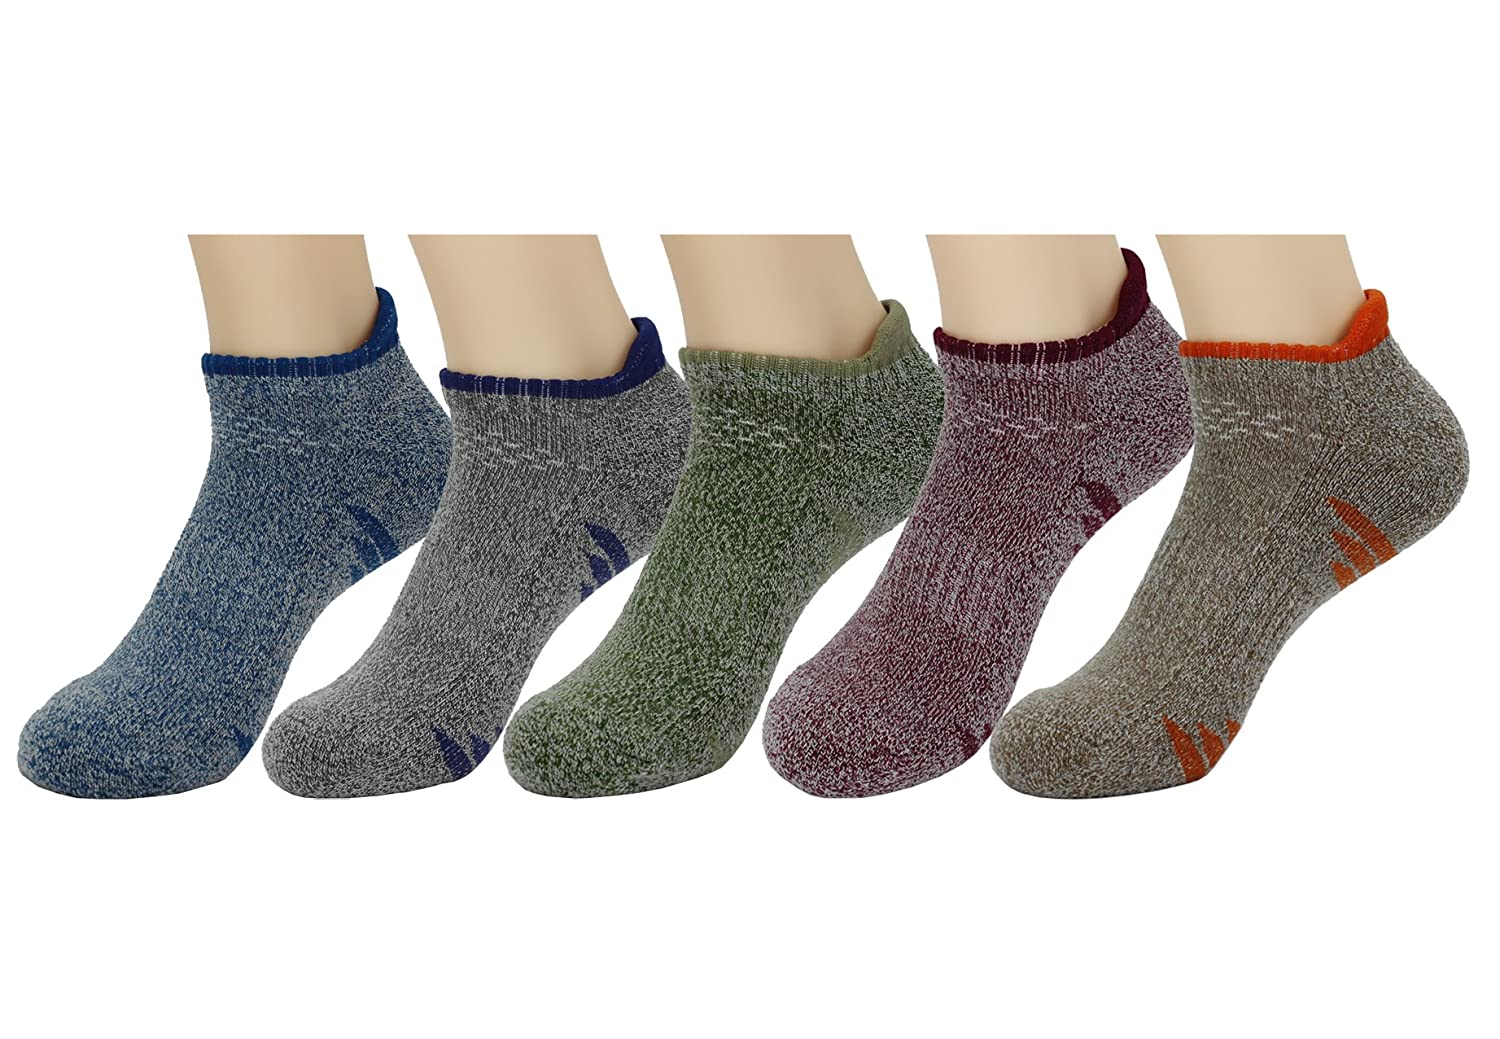 Waymoda 5 Pairs Unisex Low Cut Ankle Crew Socks, Outdoor Running Hiking Walking Trekking Trainer Sports Sneaker Sox, 5 Color/Set, Quick Drying Polyester, Men/Women/Boys/Girls UK 3-12/EUR 36-45